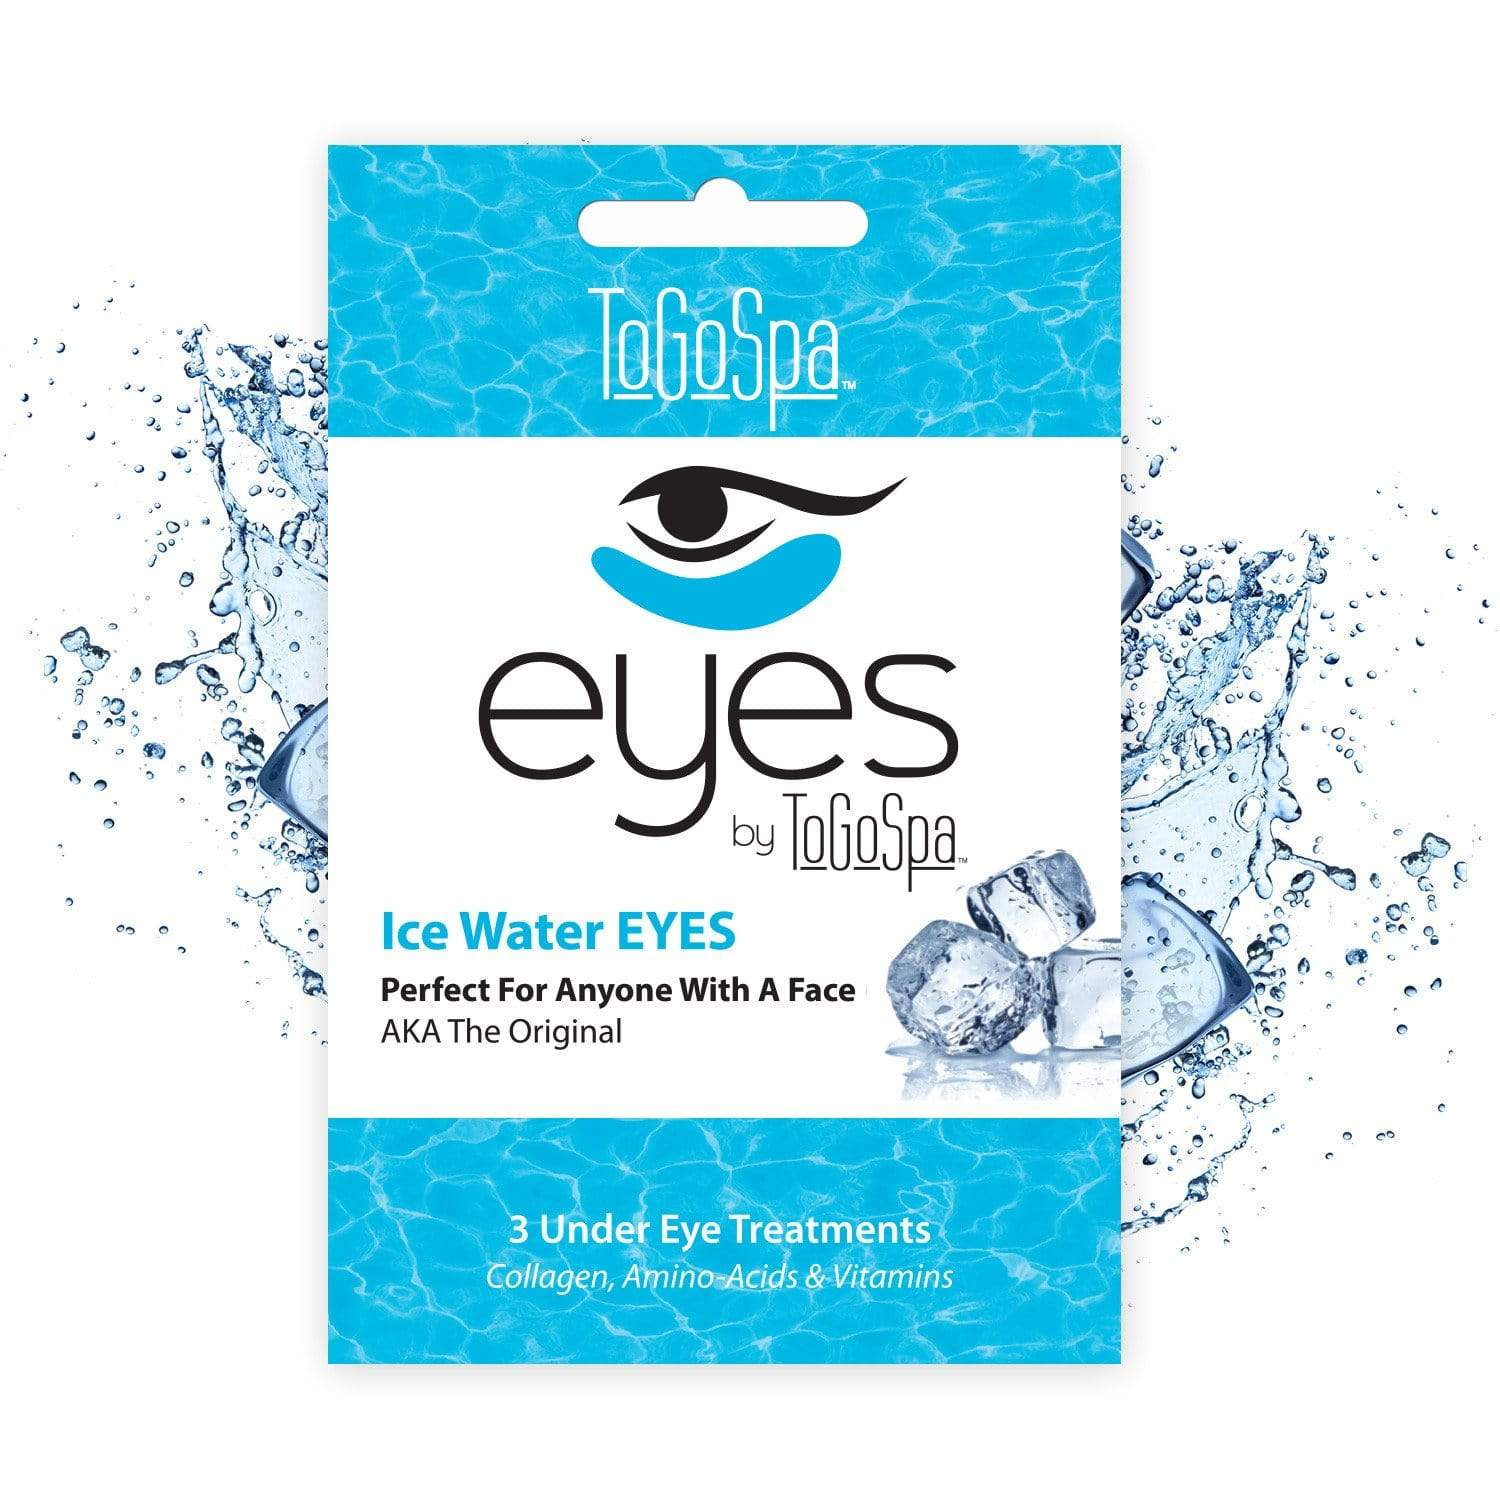 ToGoSpa bonus Ice-water / 1-pack-3-treatments Bonus Pack Of Ice Water Eyes - JessicaLynn